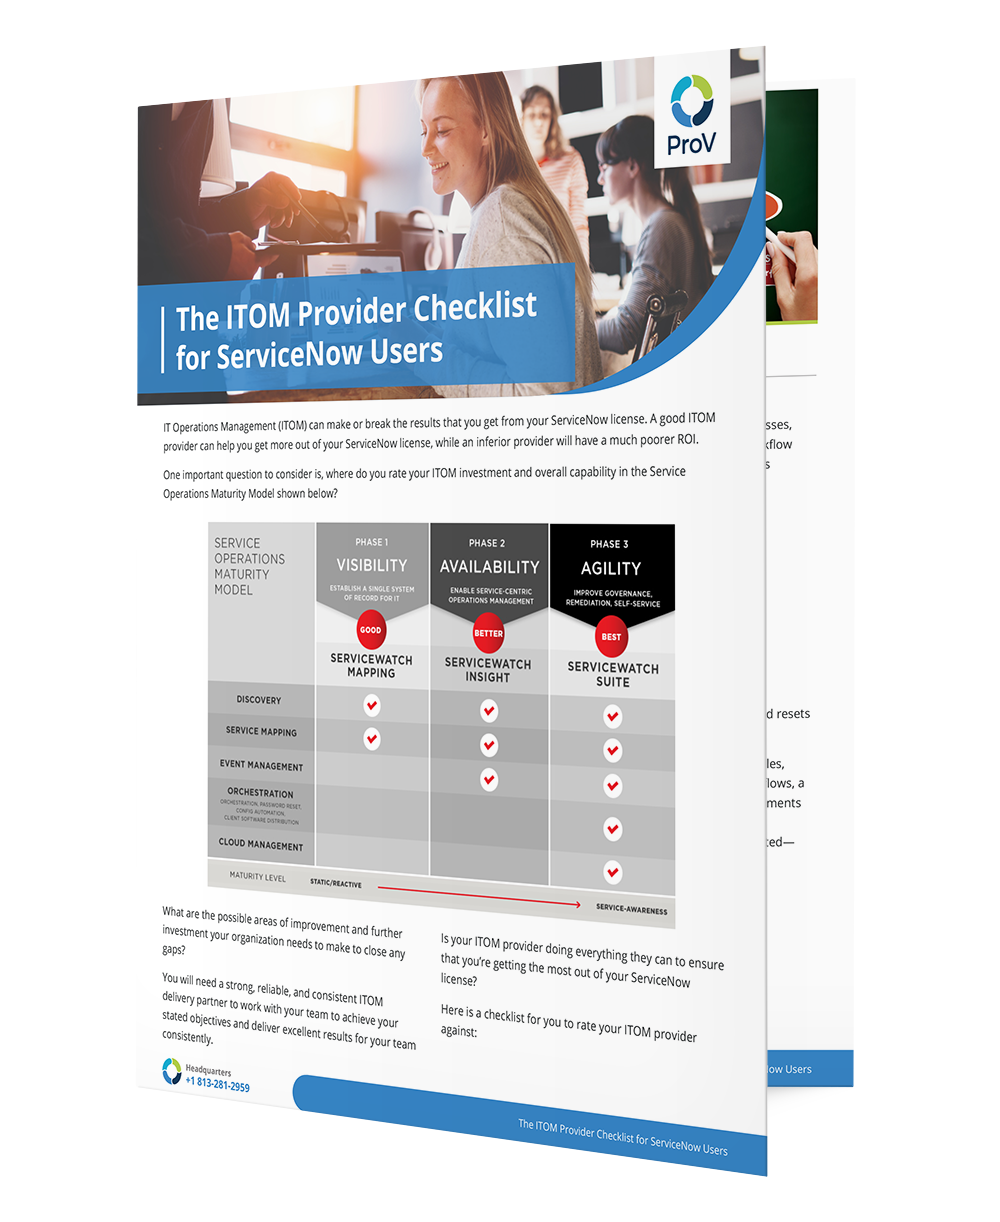 itom-provider-checklist-for-servicenow-users